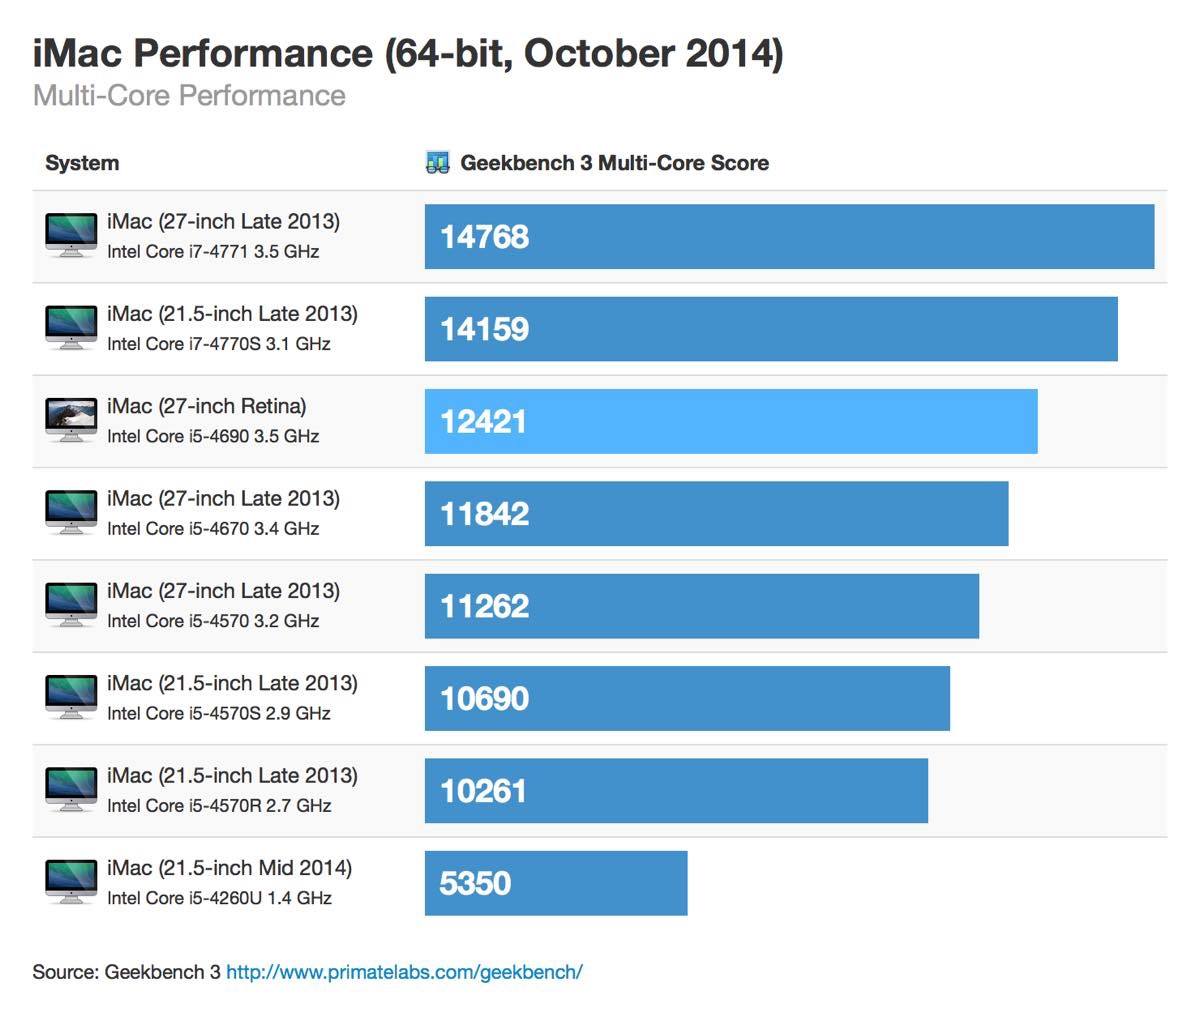 t_retina-imac-64bit-october-2014-multicore